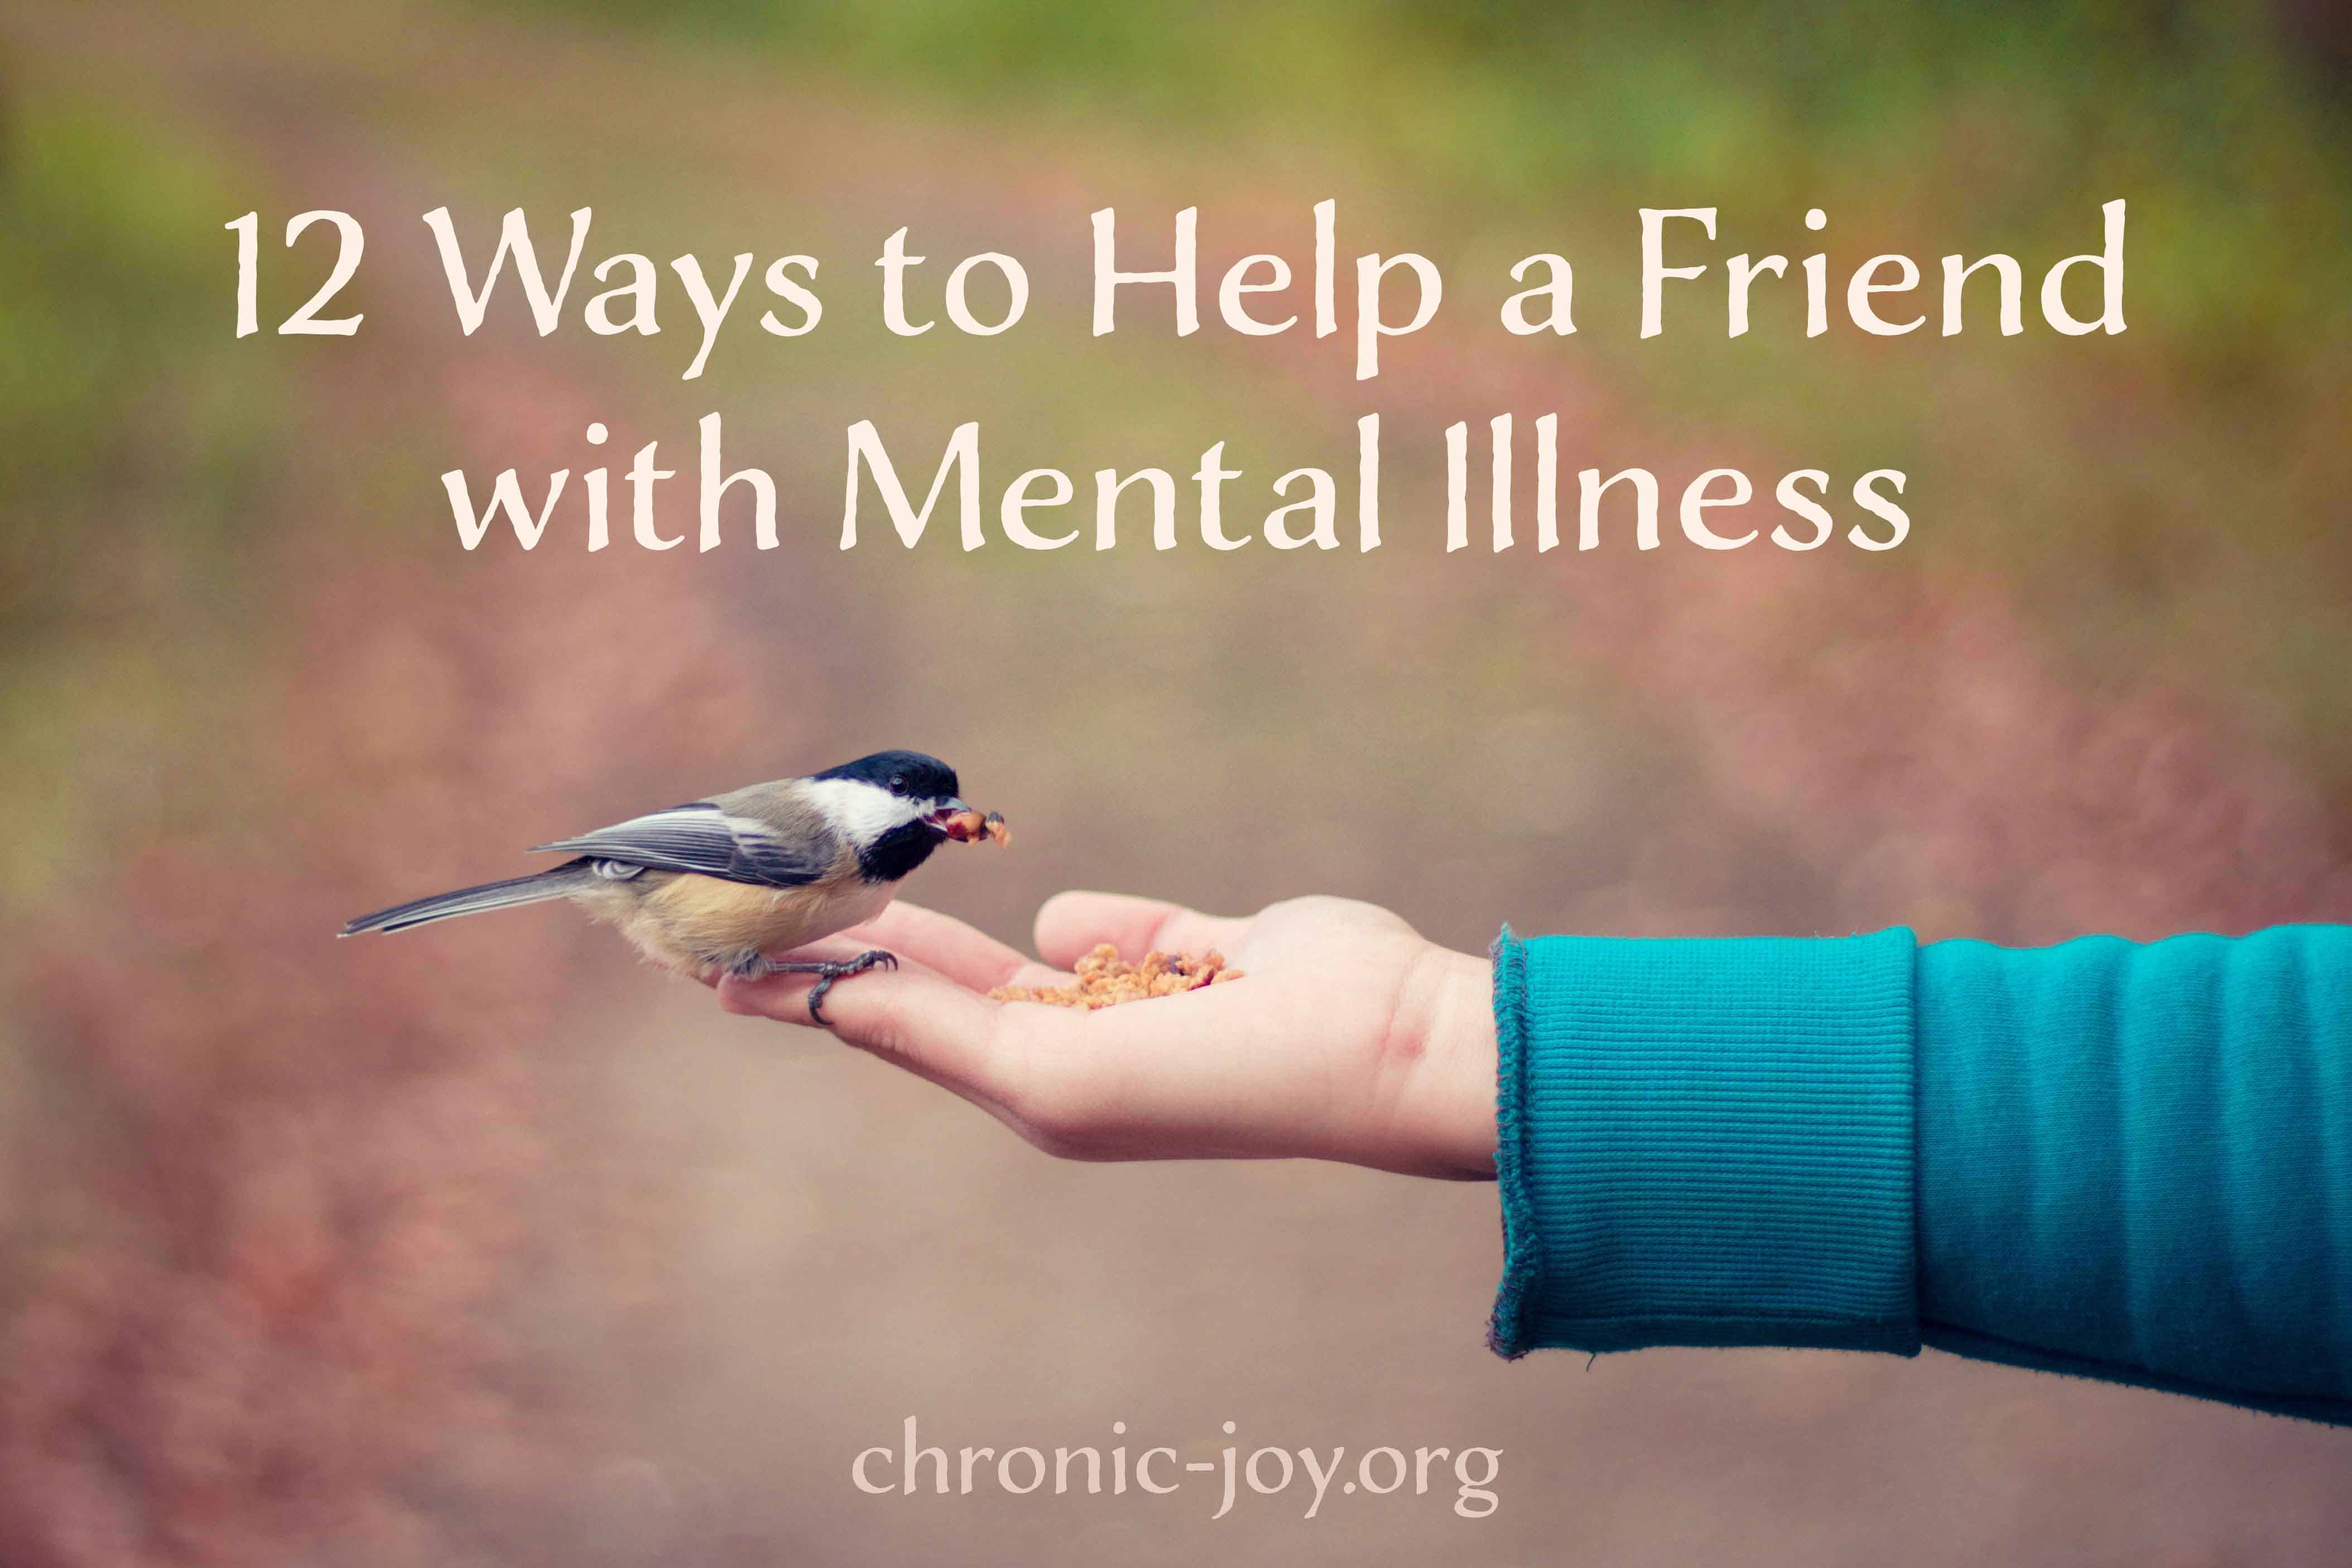 How to Help a Friend with Mental Illness